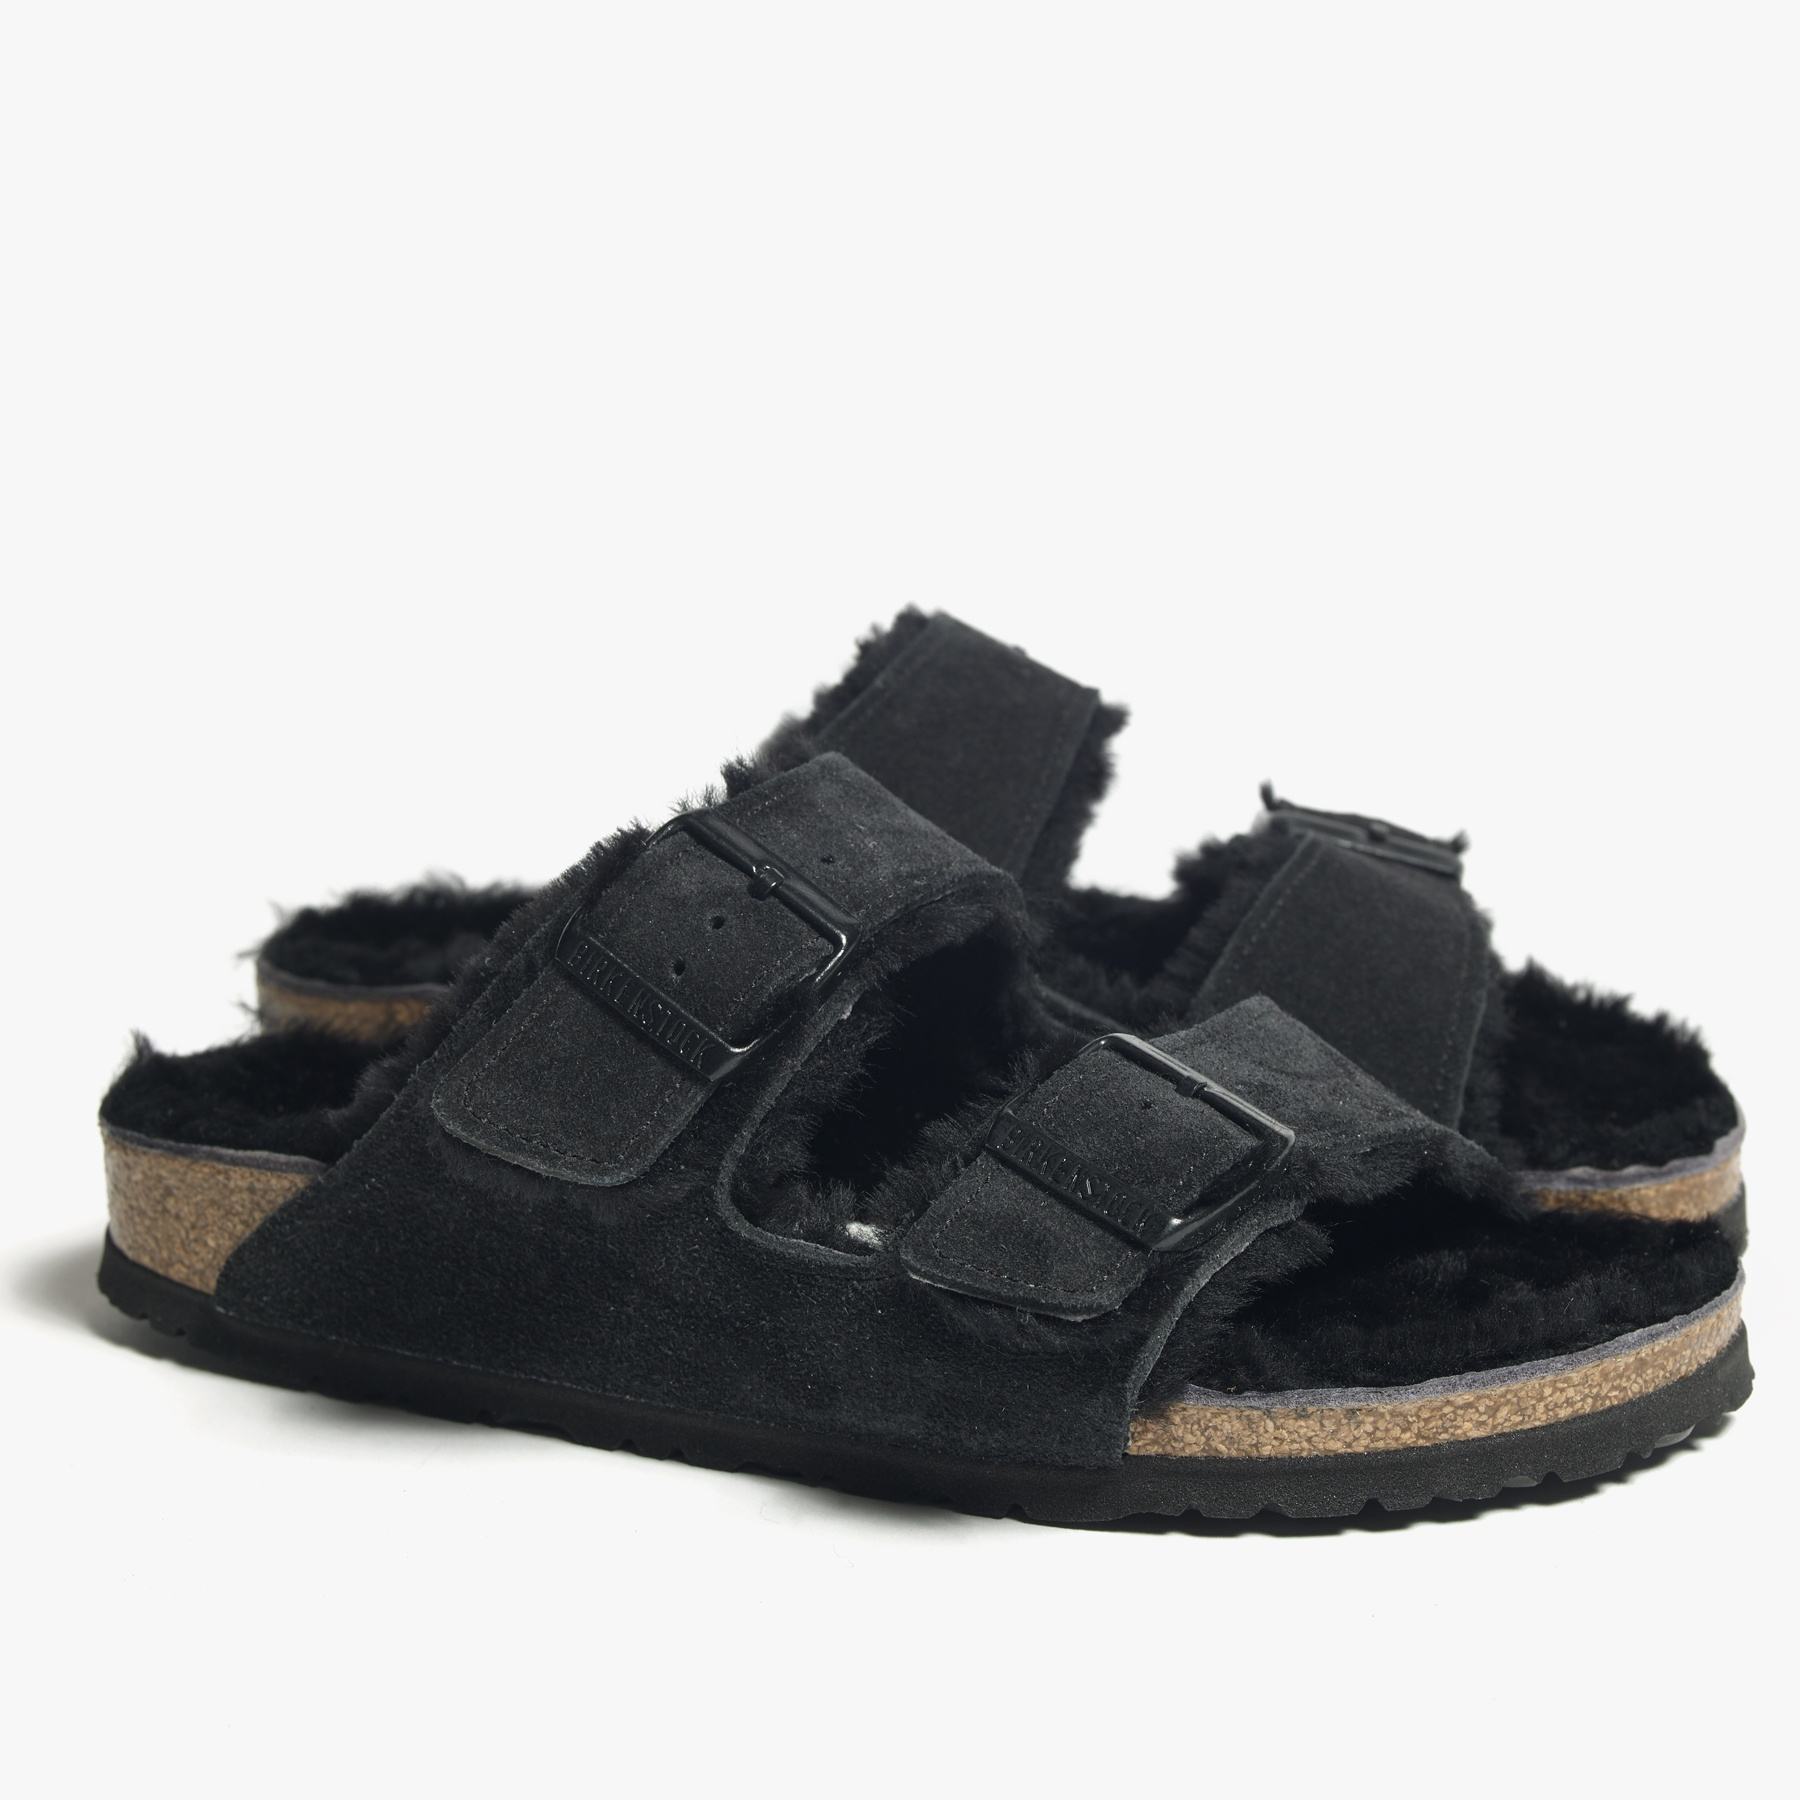 James Perse Birkenstock Arizona Shearling Sandal Womens